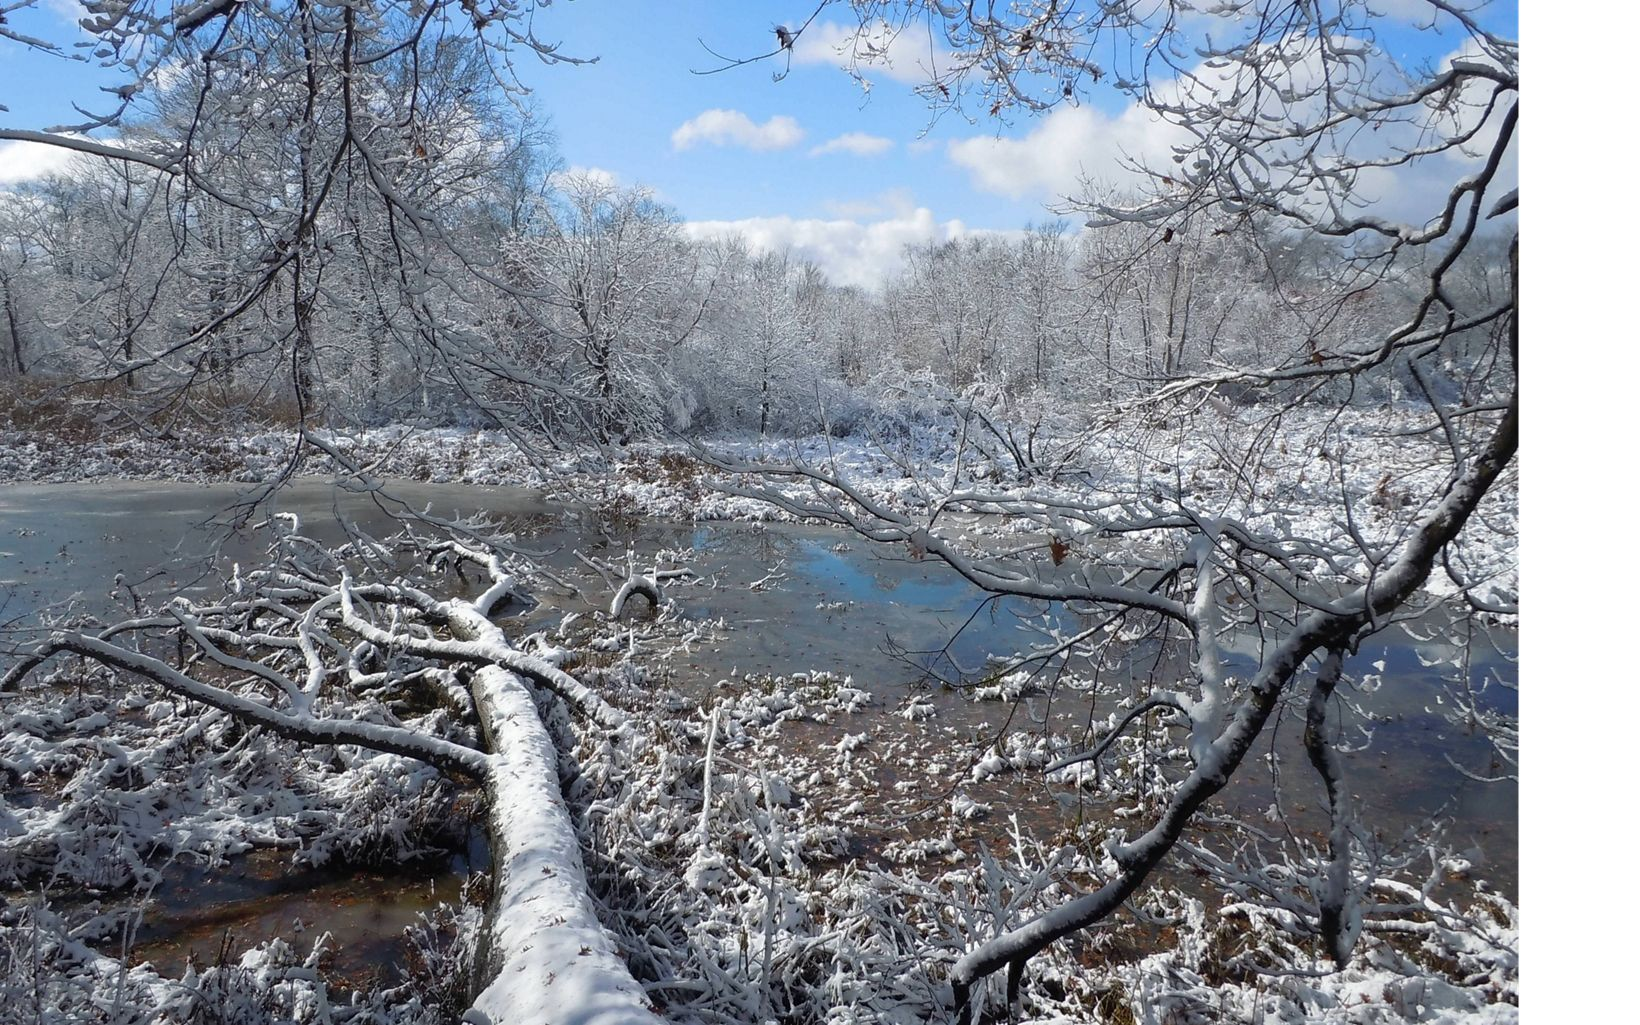 Lake effect snow off of Lake Erie helps promote the growth of Morgan swamp's hemlock trees, which in Ohio, are not typically found in swamps.